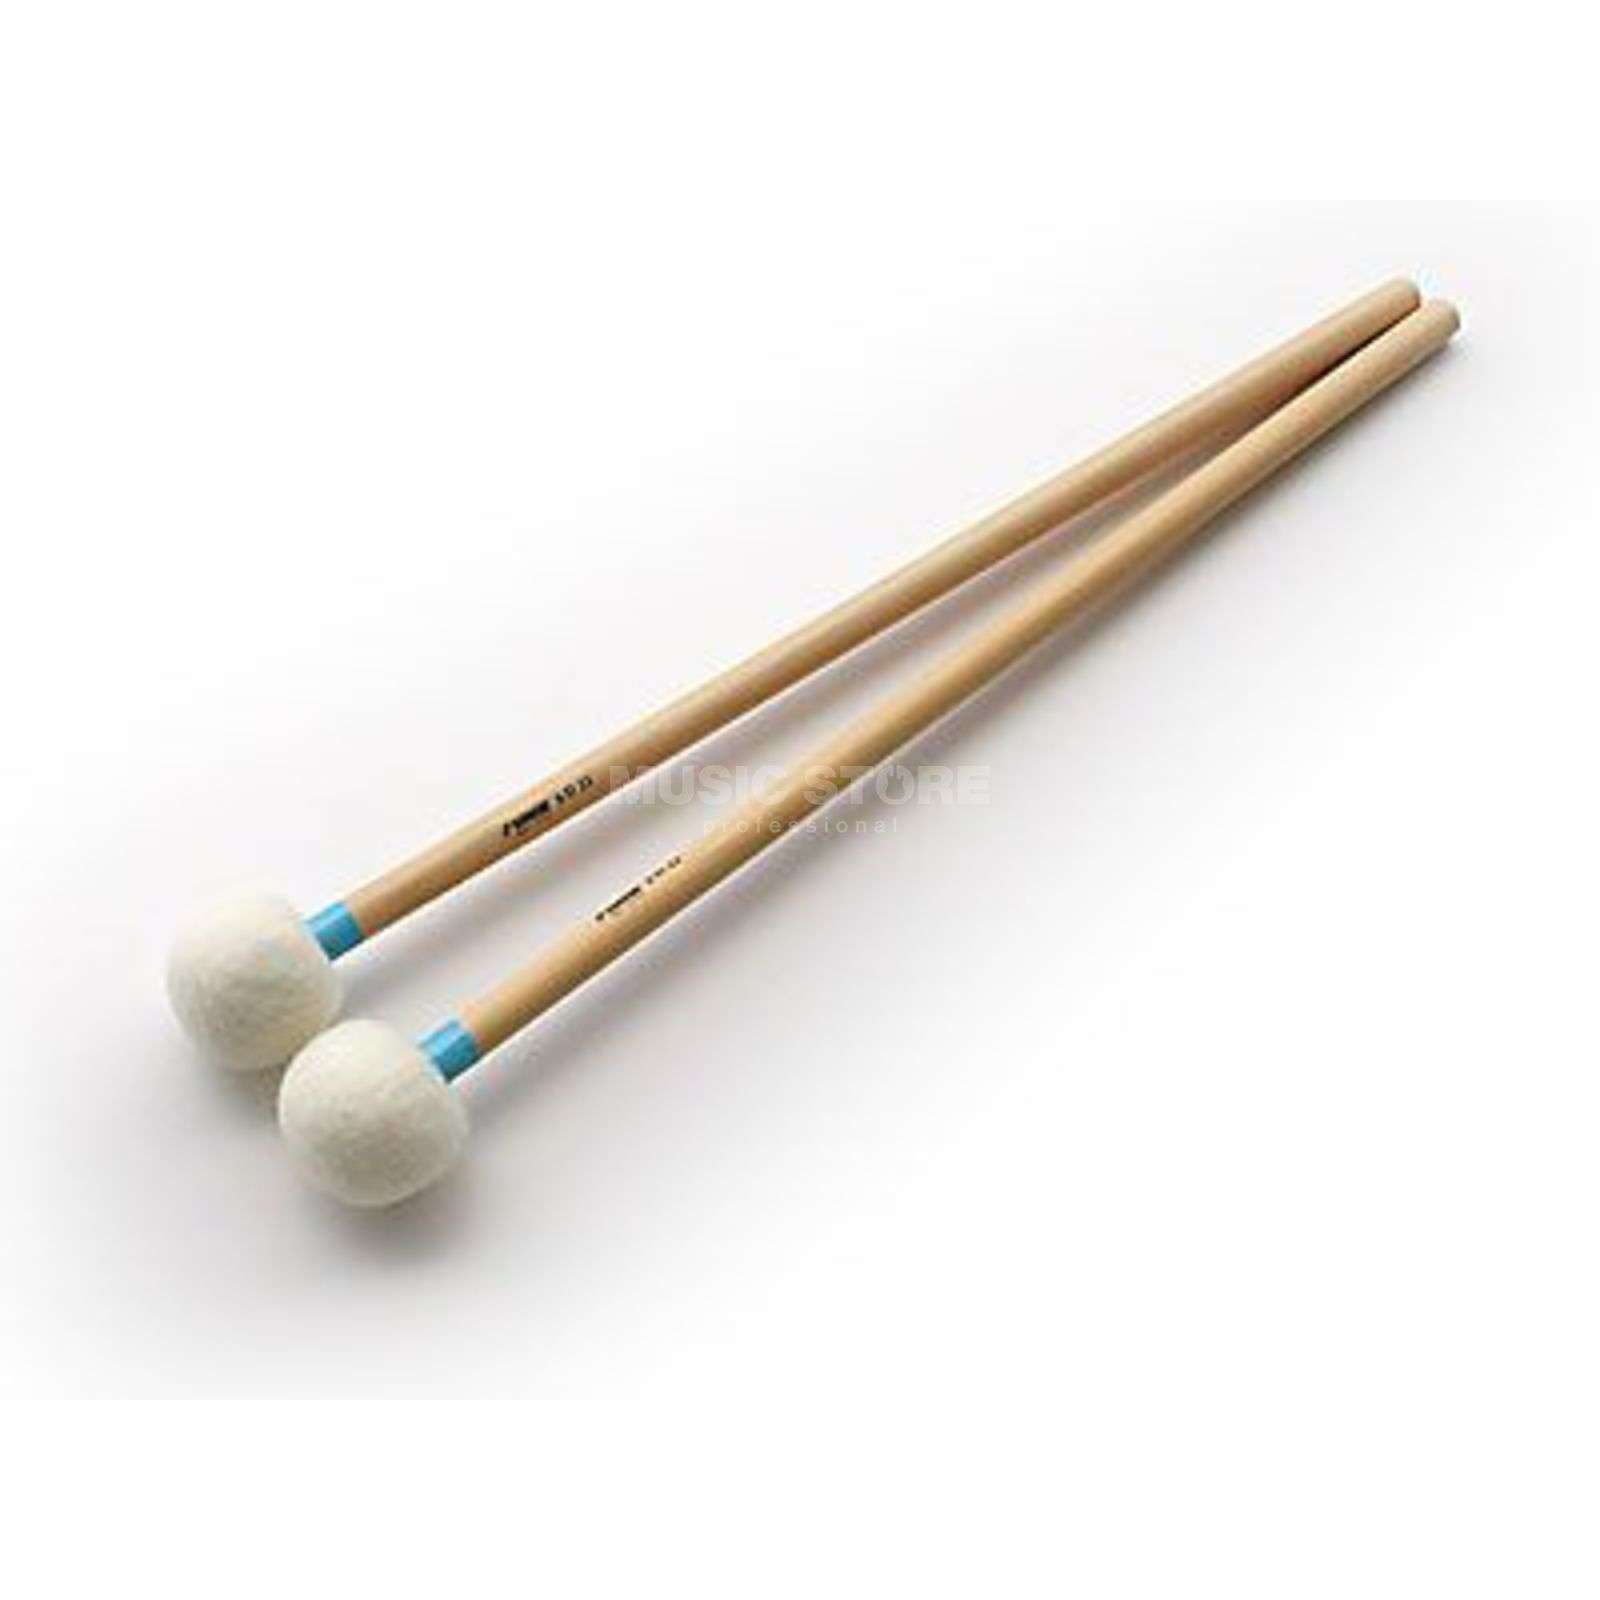 Sonor Timpani Mallet STI 22, Junior, Felt, Medium Soft Produktbillede